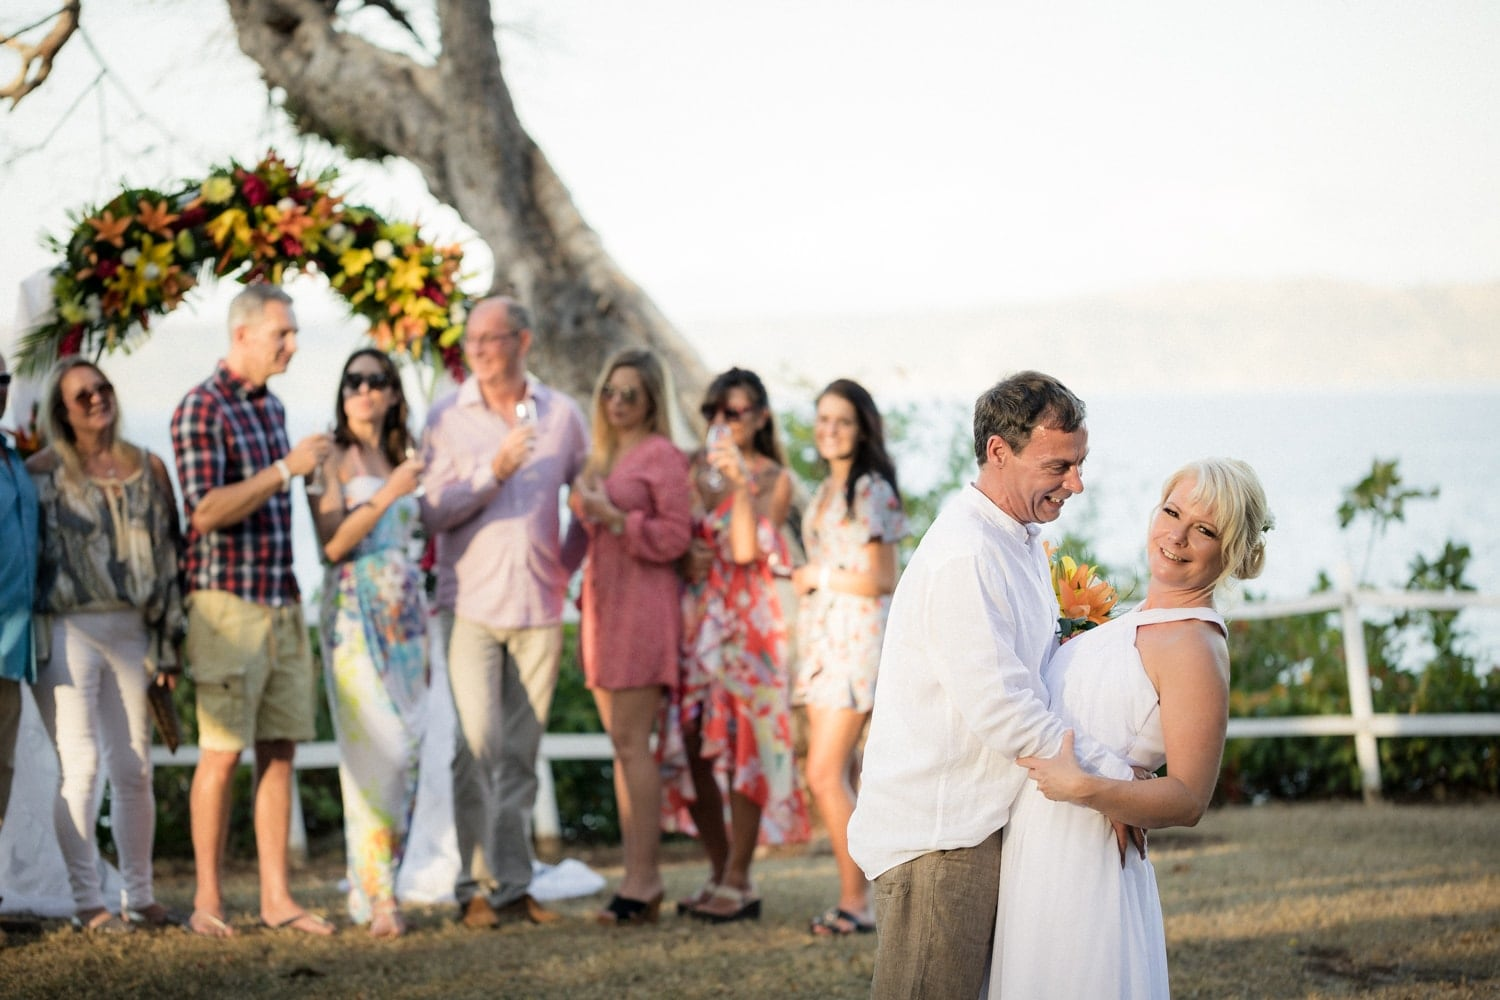 Kim-Richard-wedding-ceremony-Occidental-Papagayo-Costa-Rica.jpg